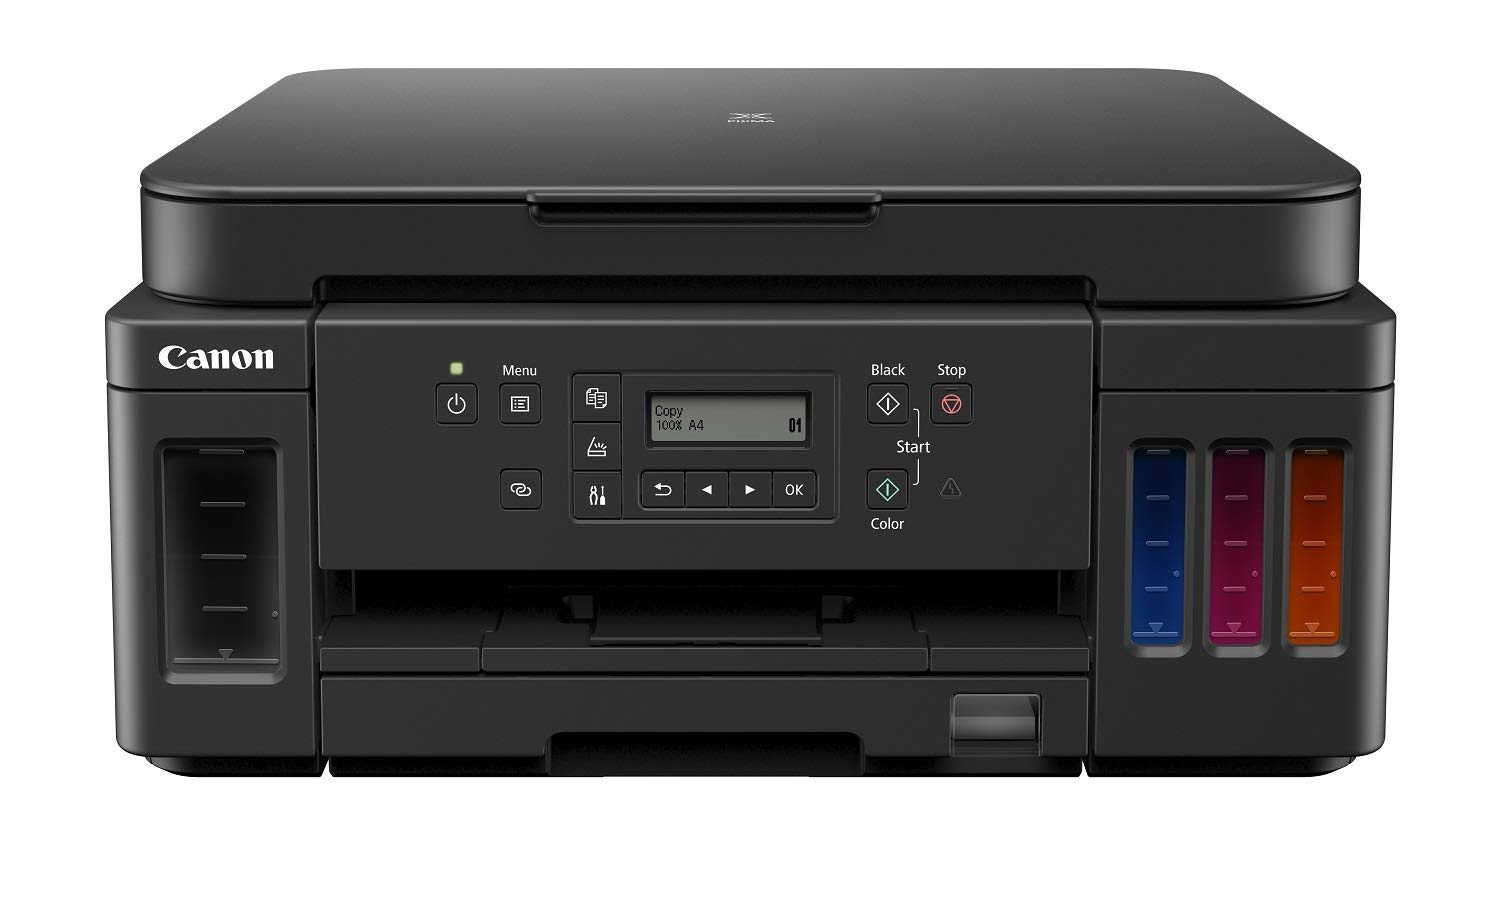 Canon G6070 All-In-One Wi-Fi Colour Ink Tank Printer With